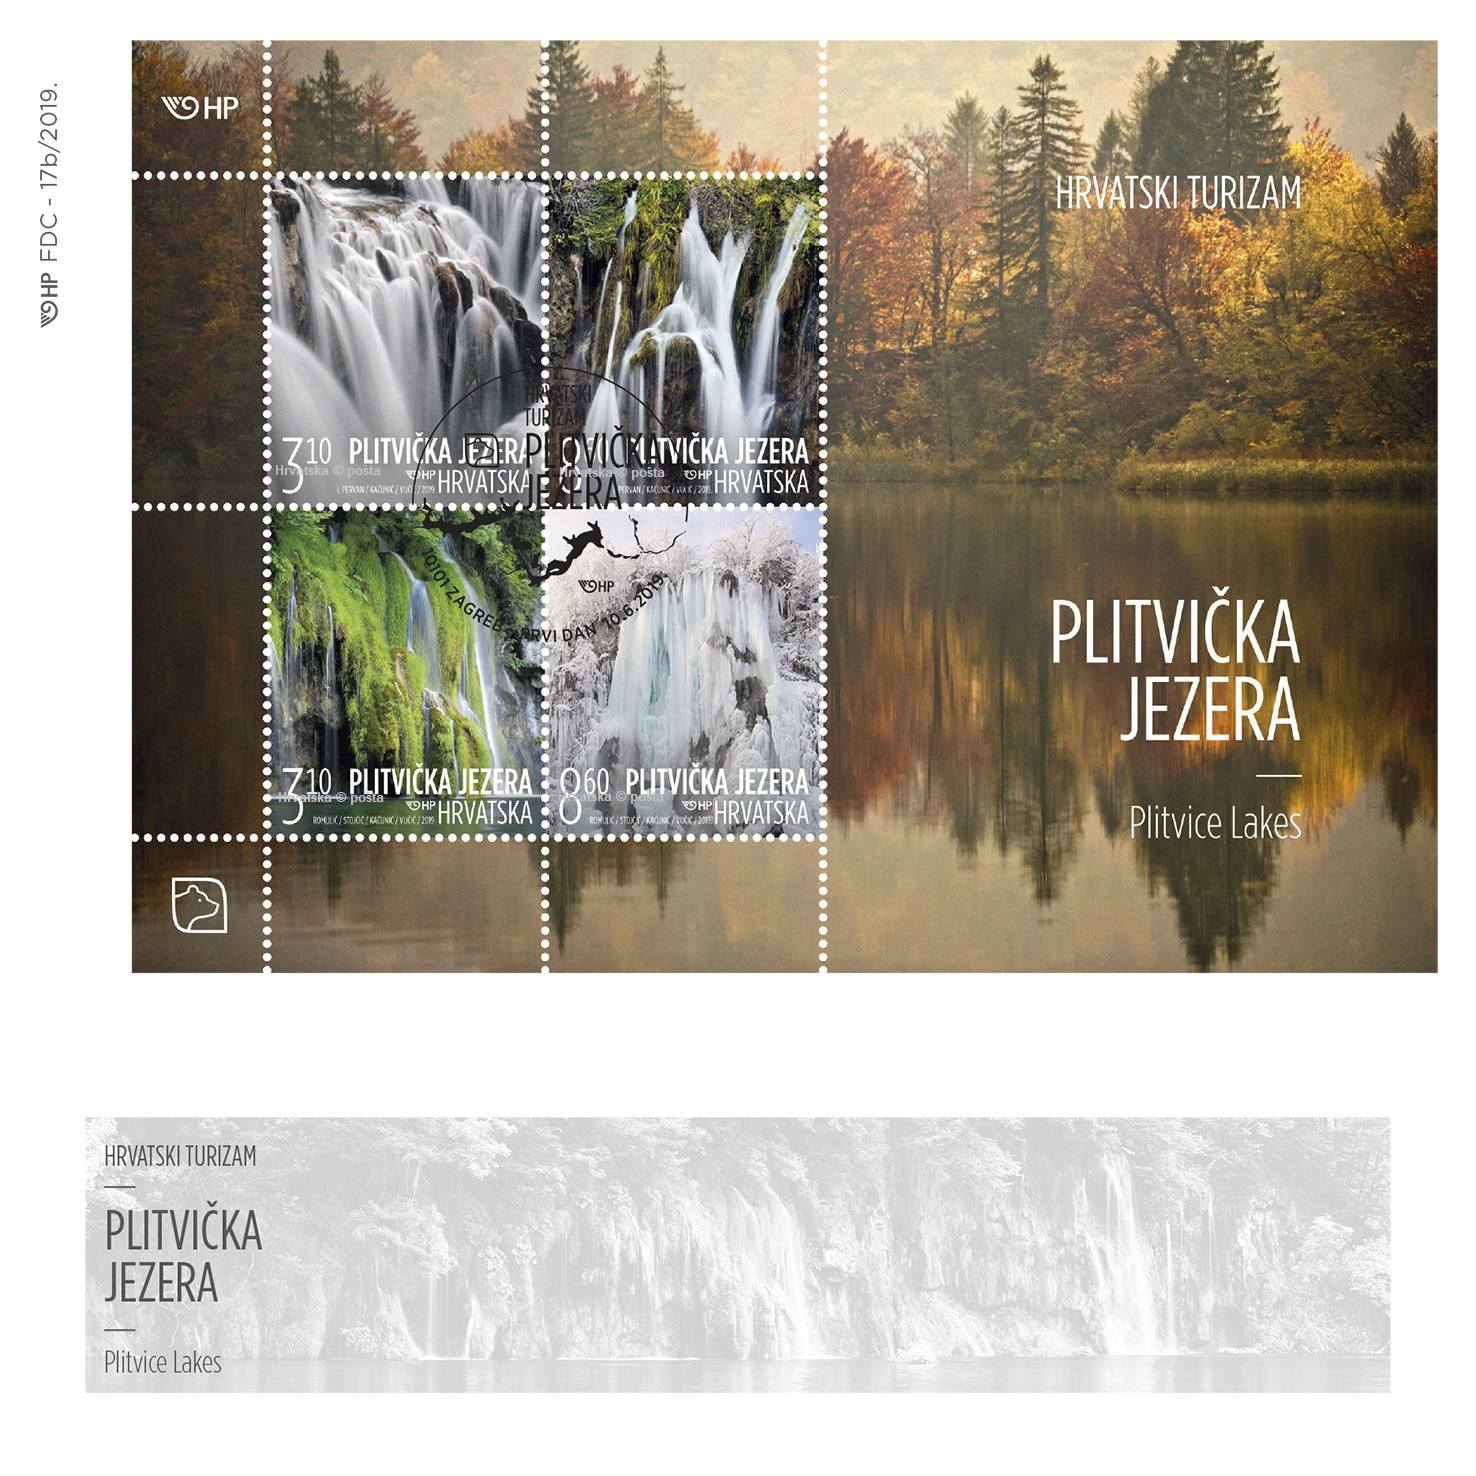 Croatian postage stamp wins world award in Italy